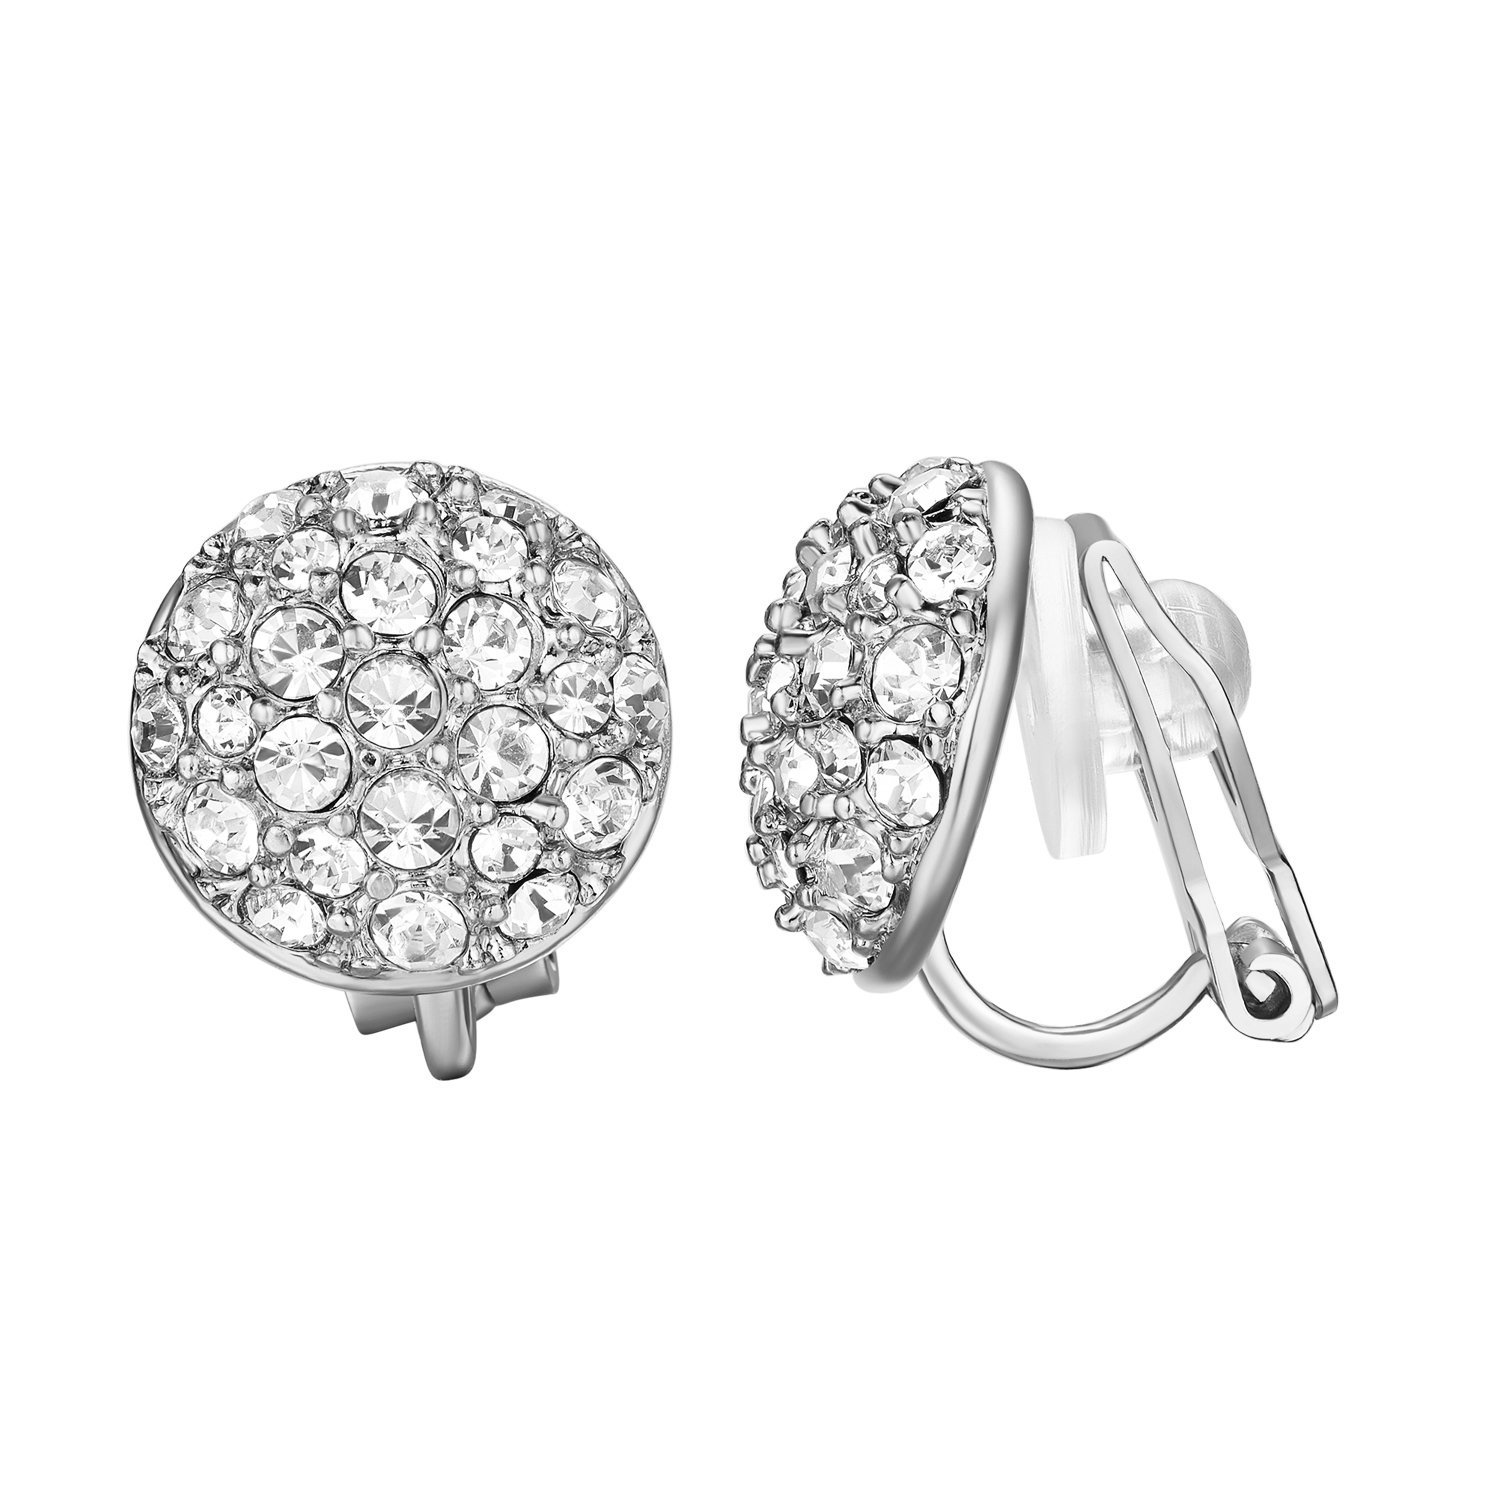 Yoursfs Clip On Earrings for Women 18K White Gold Plated Sparkle CZ Round Cocktail Earring Jewelry ... by Yoursfs